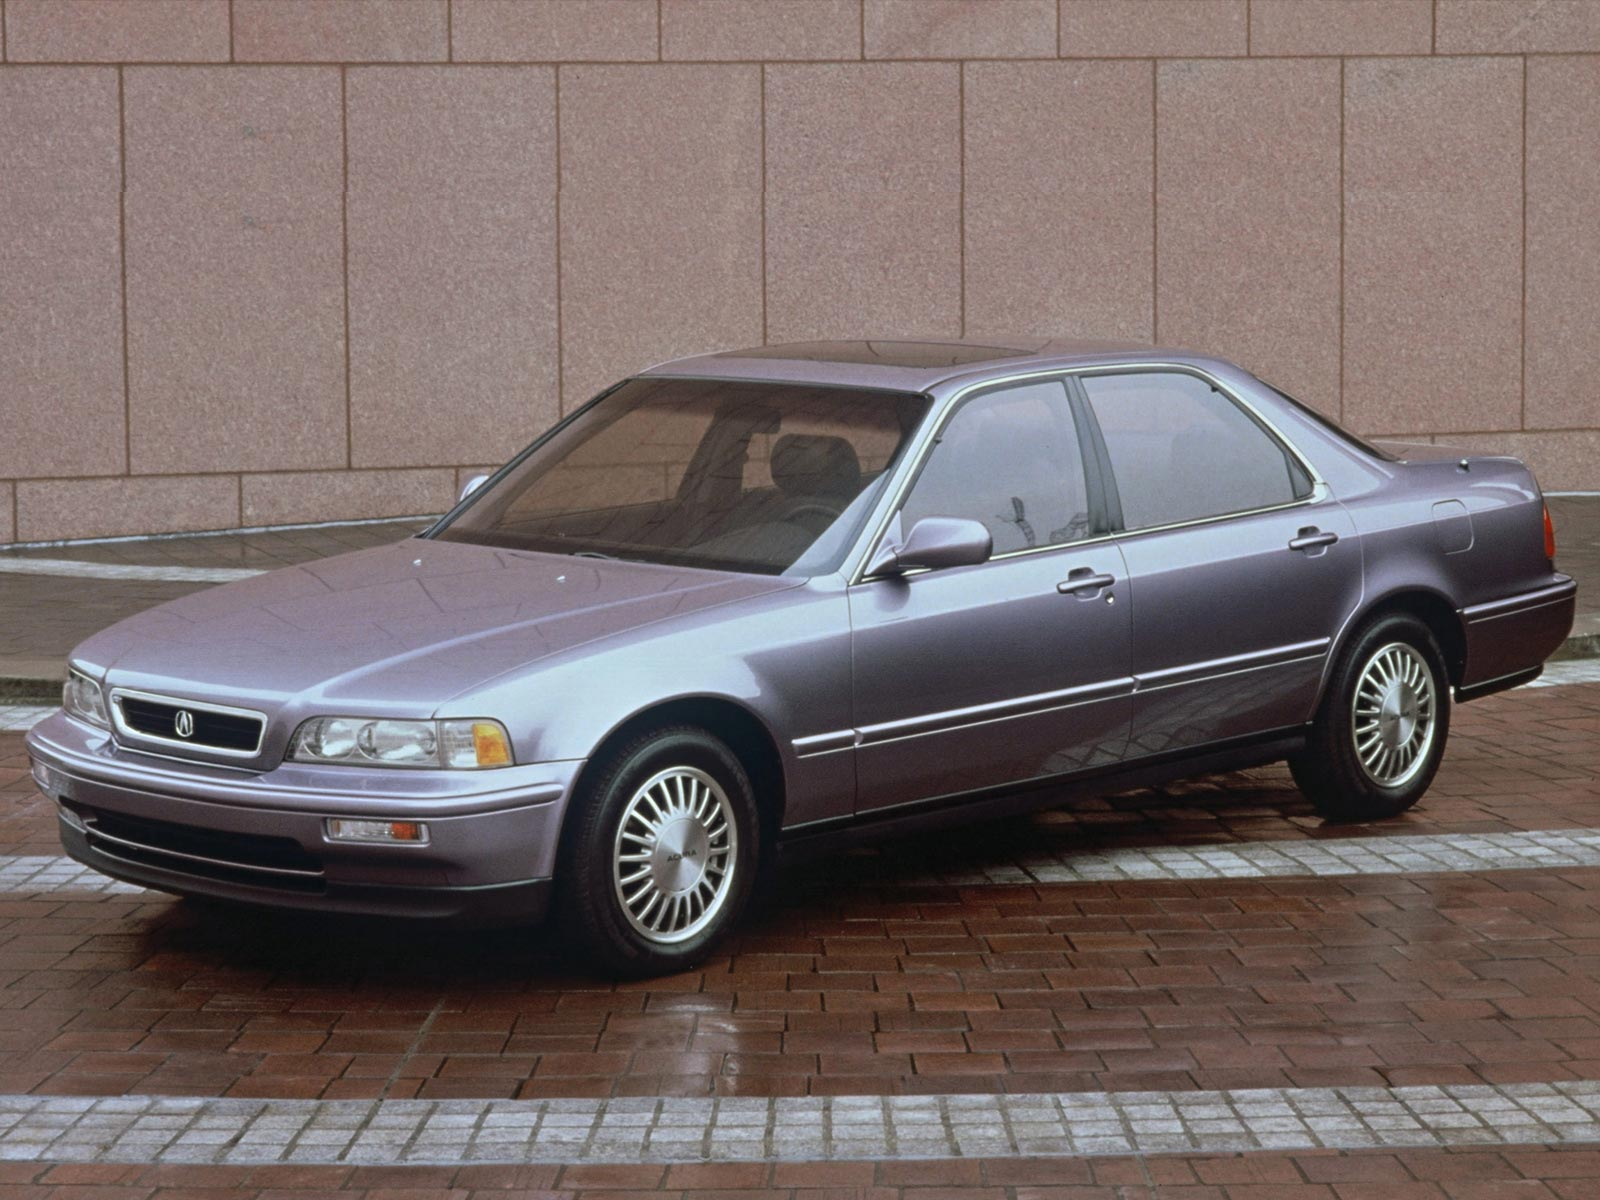 1995 Honda Legend #2